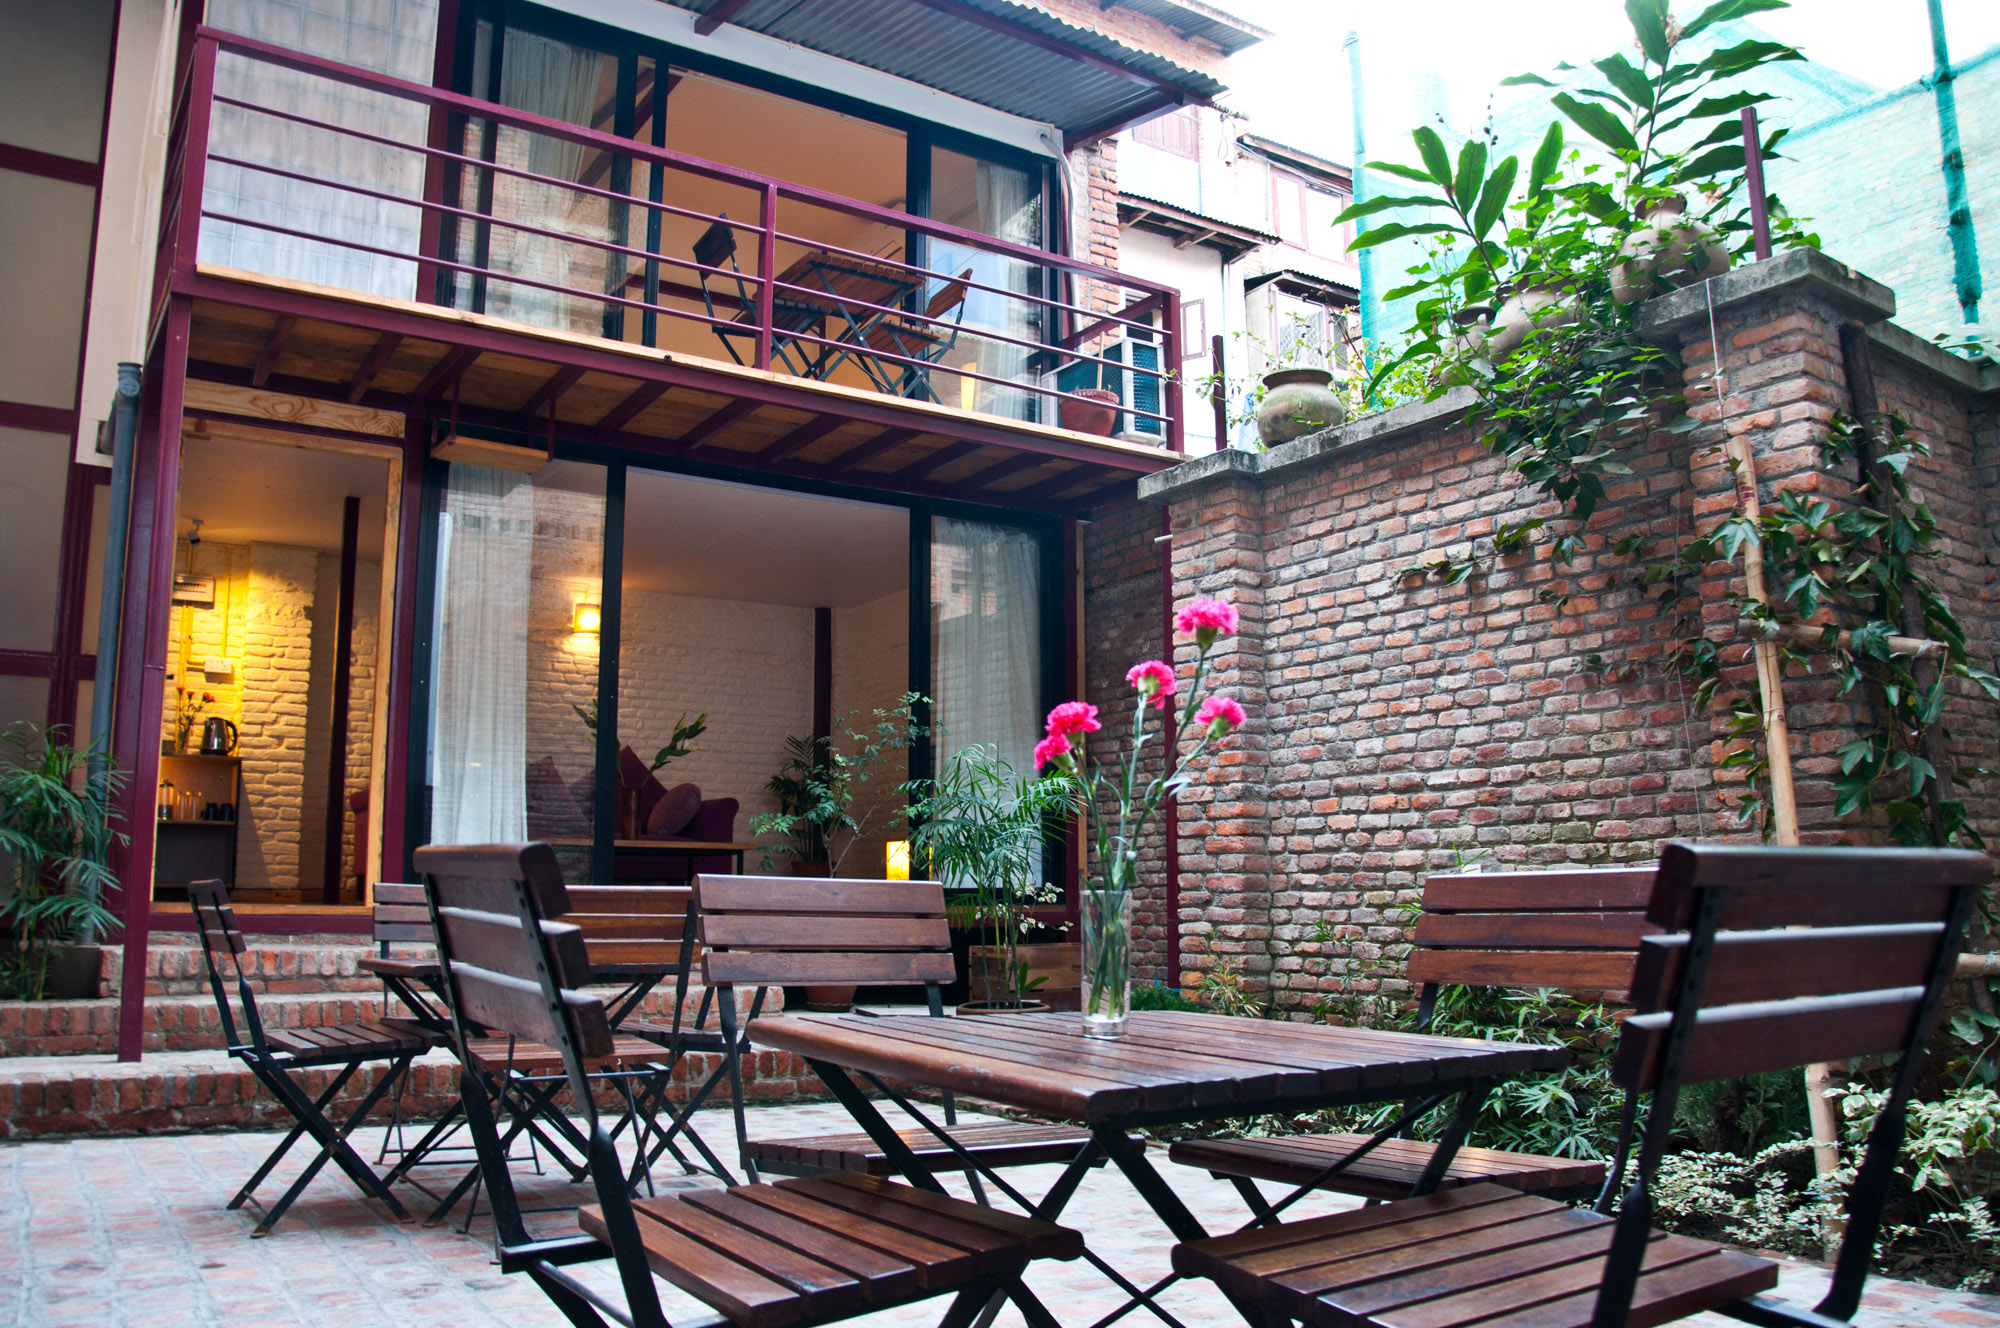 Guests can enjoy your coffee, breakfast or lunch in a peaceful courtyard with friends or family.